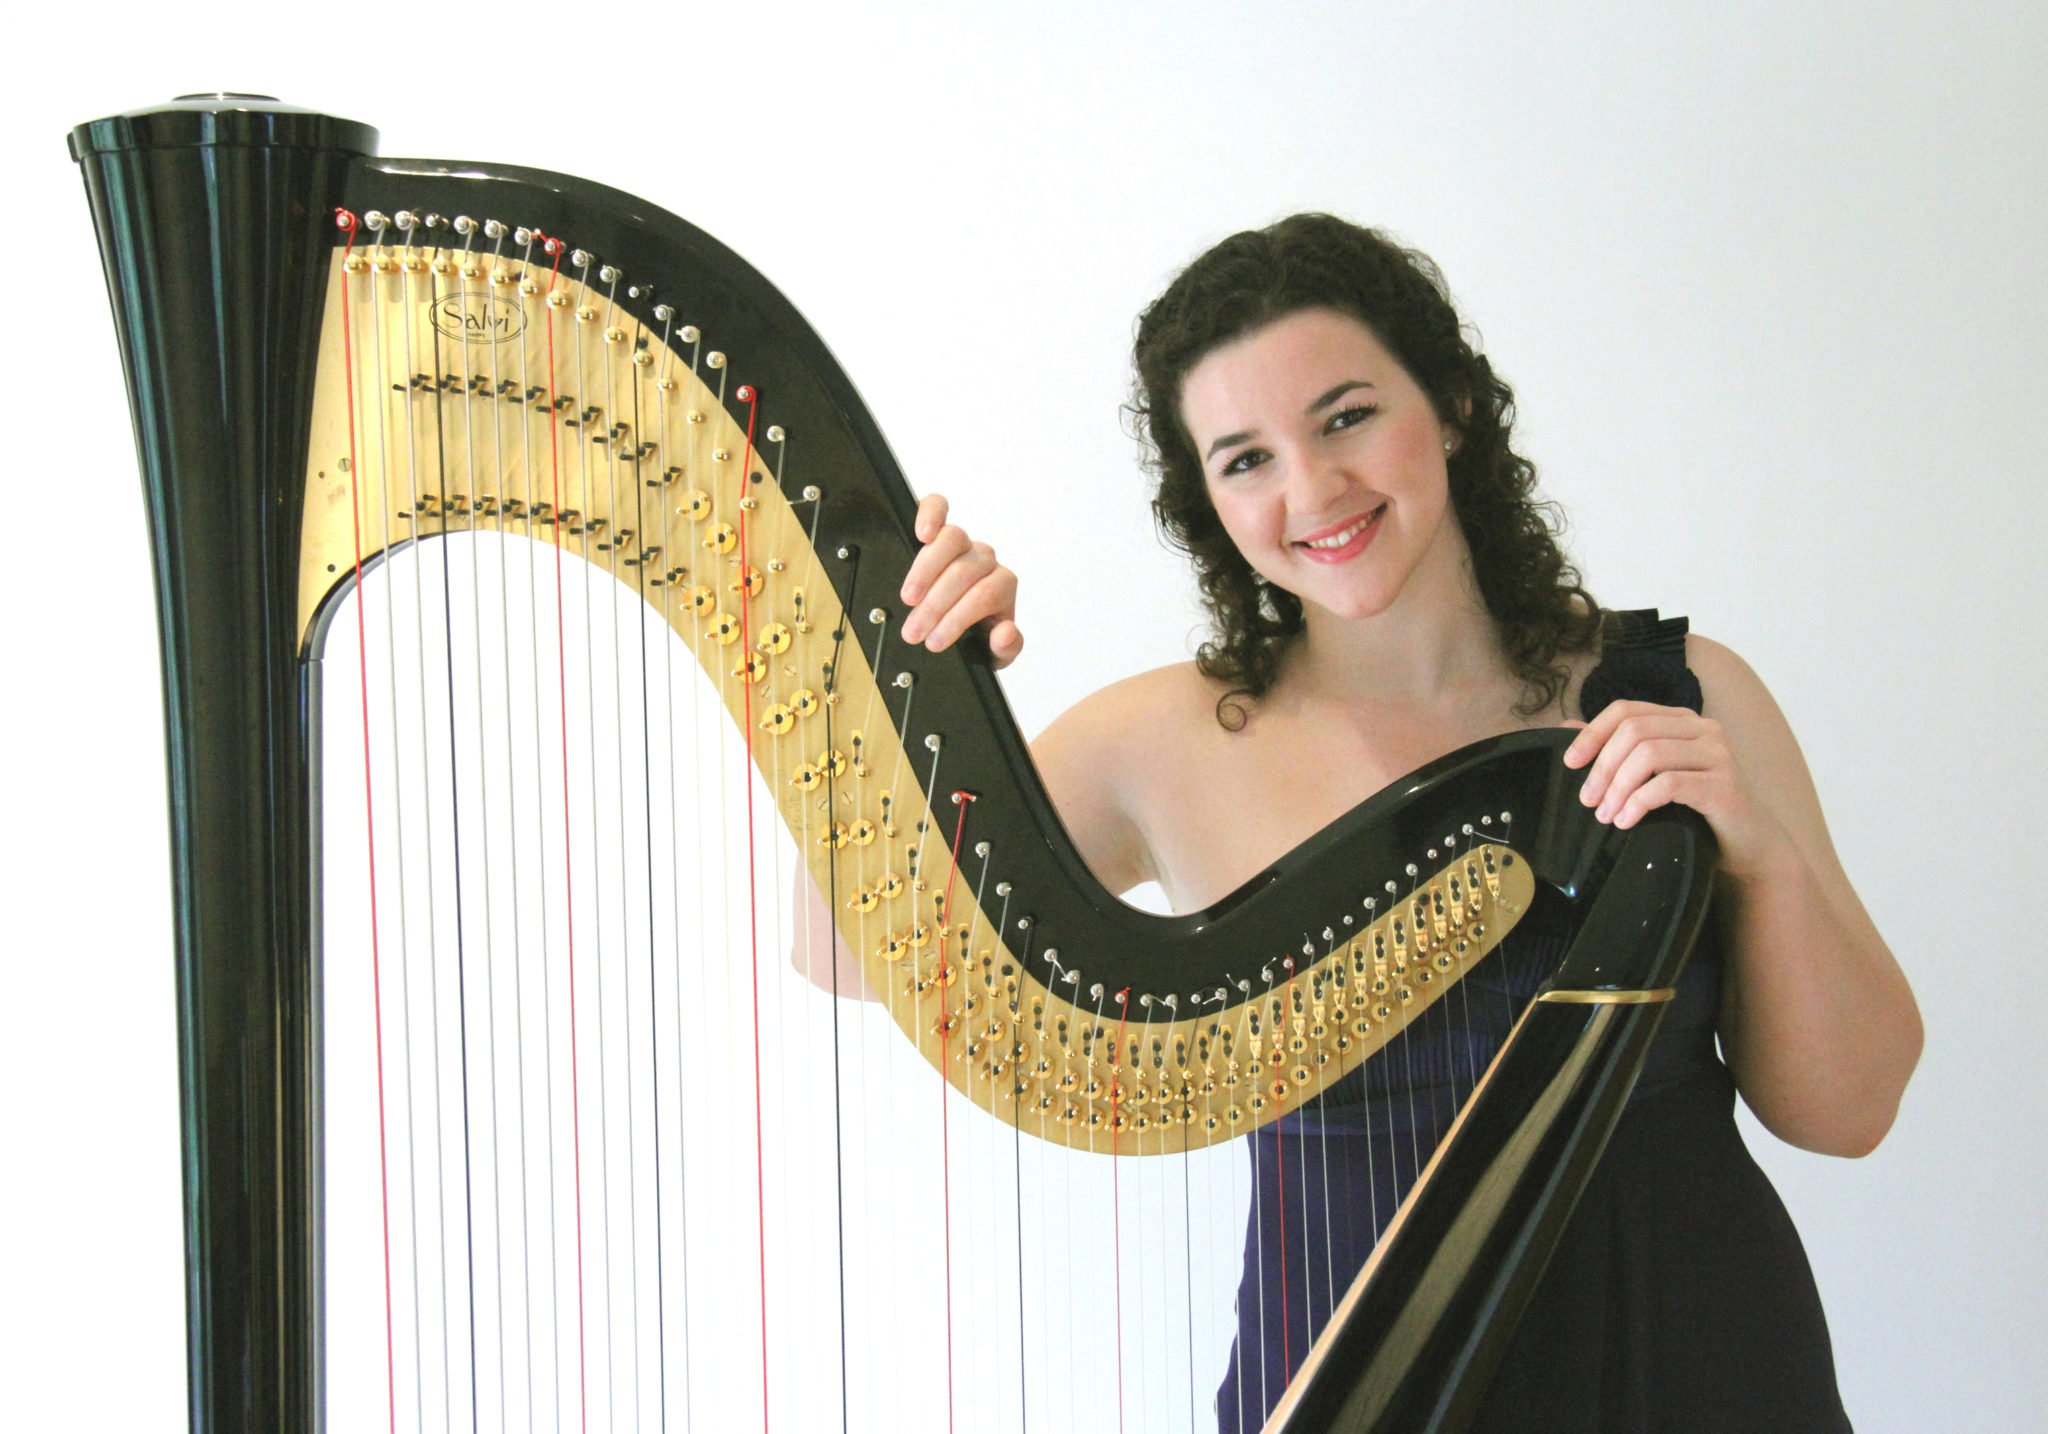 Glain Dafydd amongst the artists to perform at Sir Bryn Terfel concert to launch Wales International Harp Festival IV